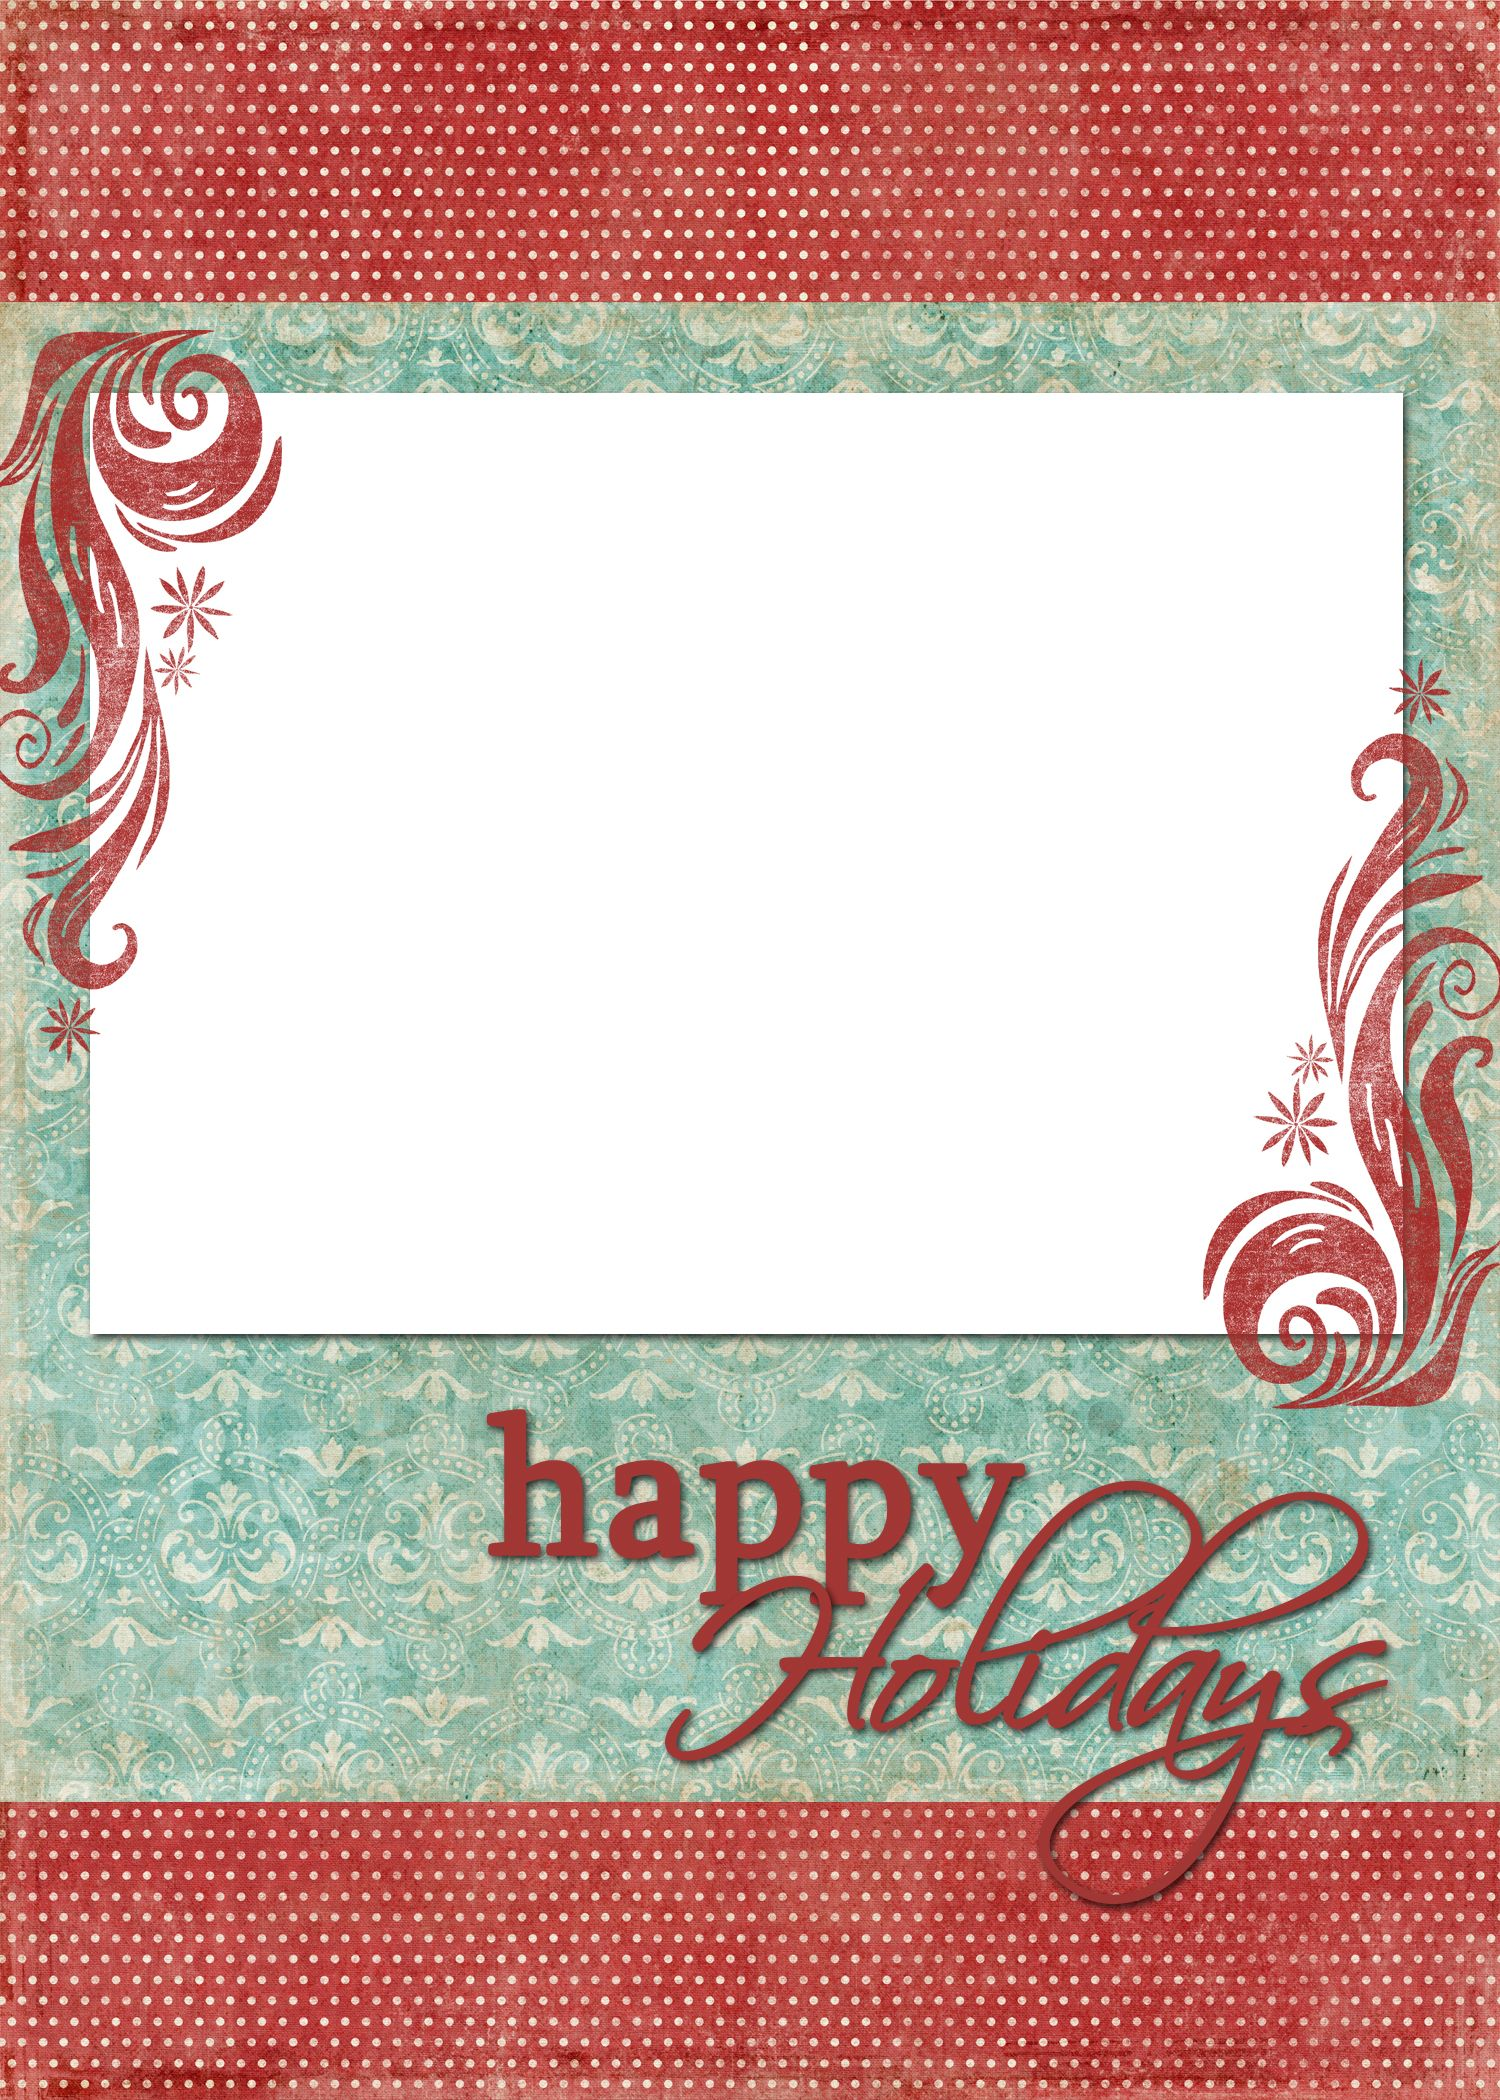 Happy Holidays Blue Red Happy Holiday Cards Christmas Card Template Holiday Card Template